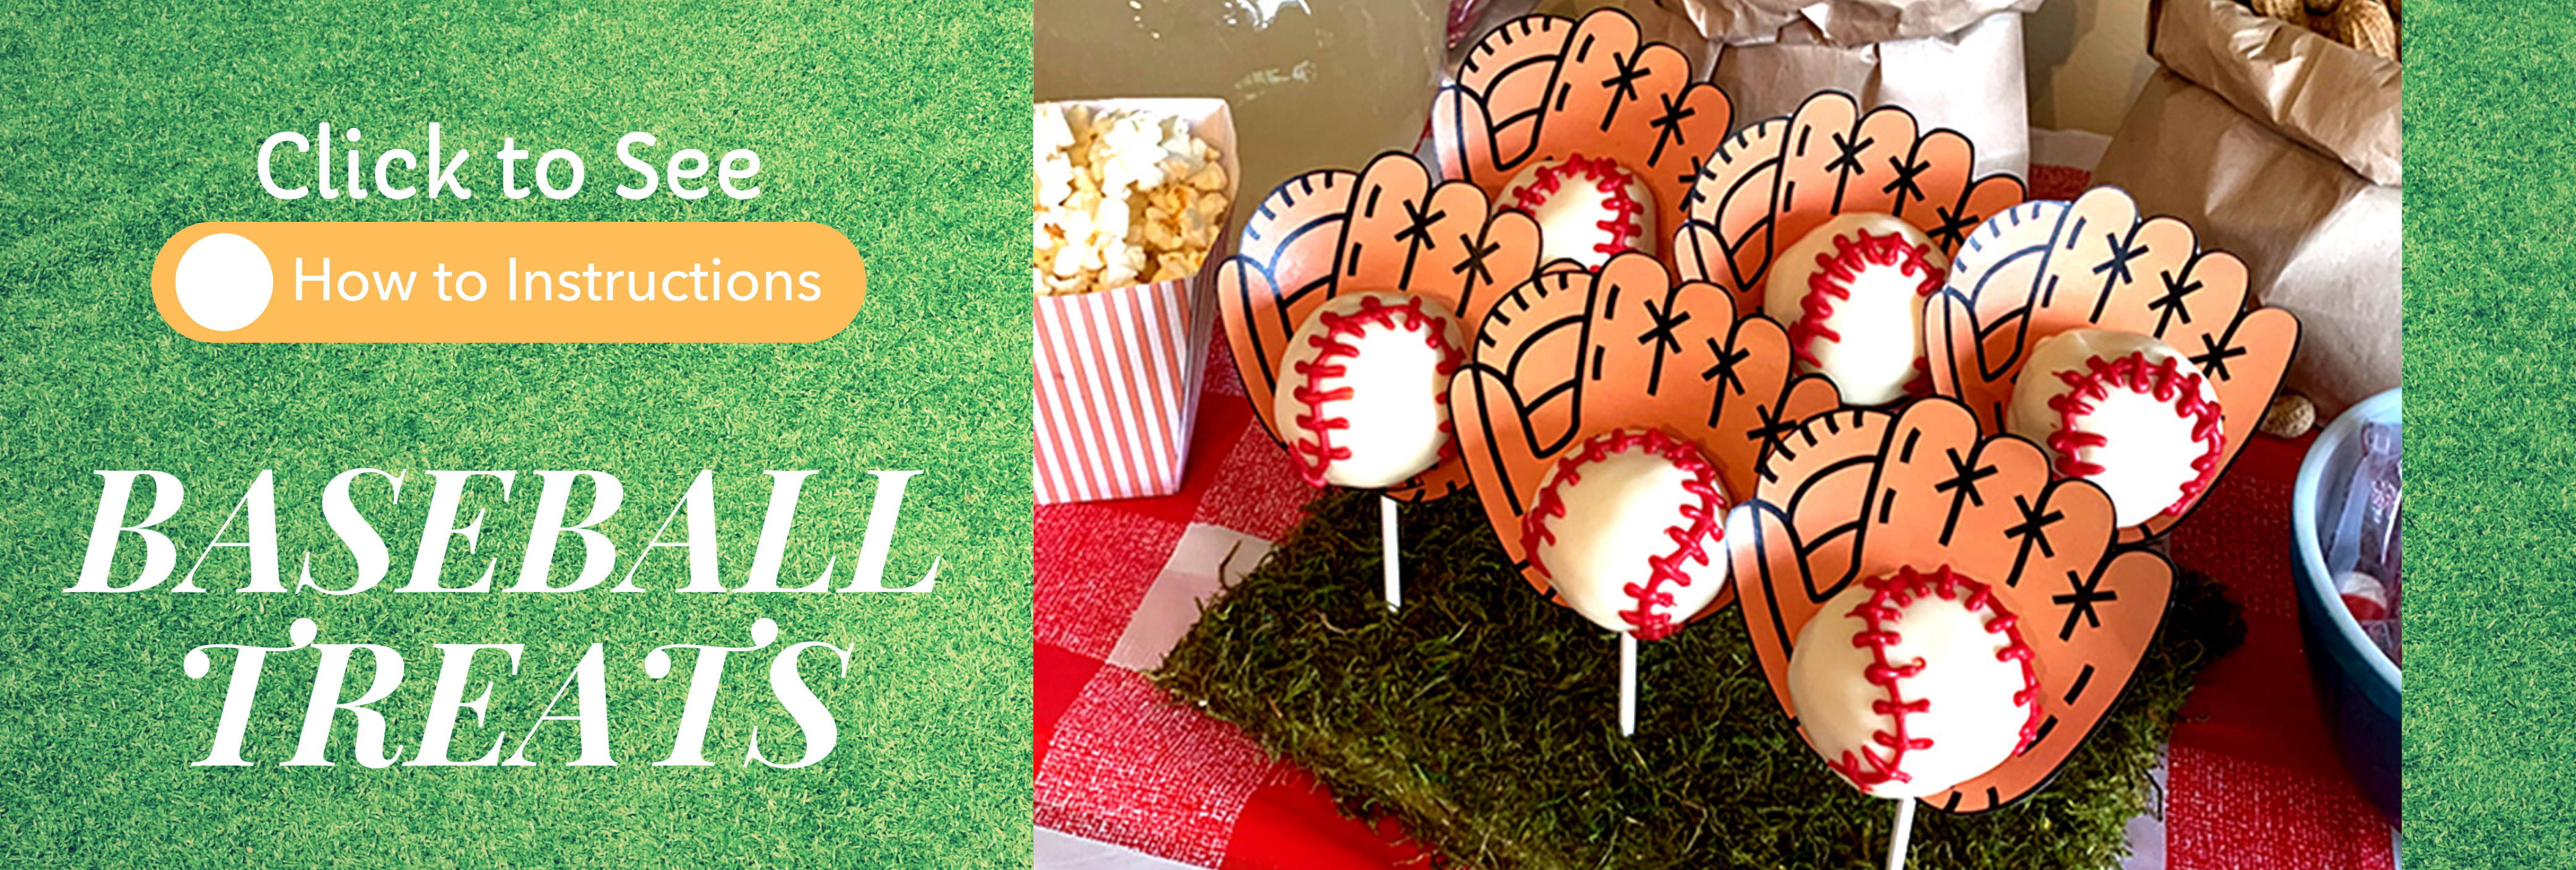 Baseball Treats